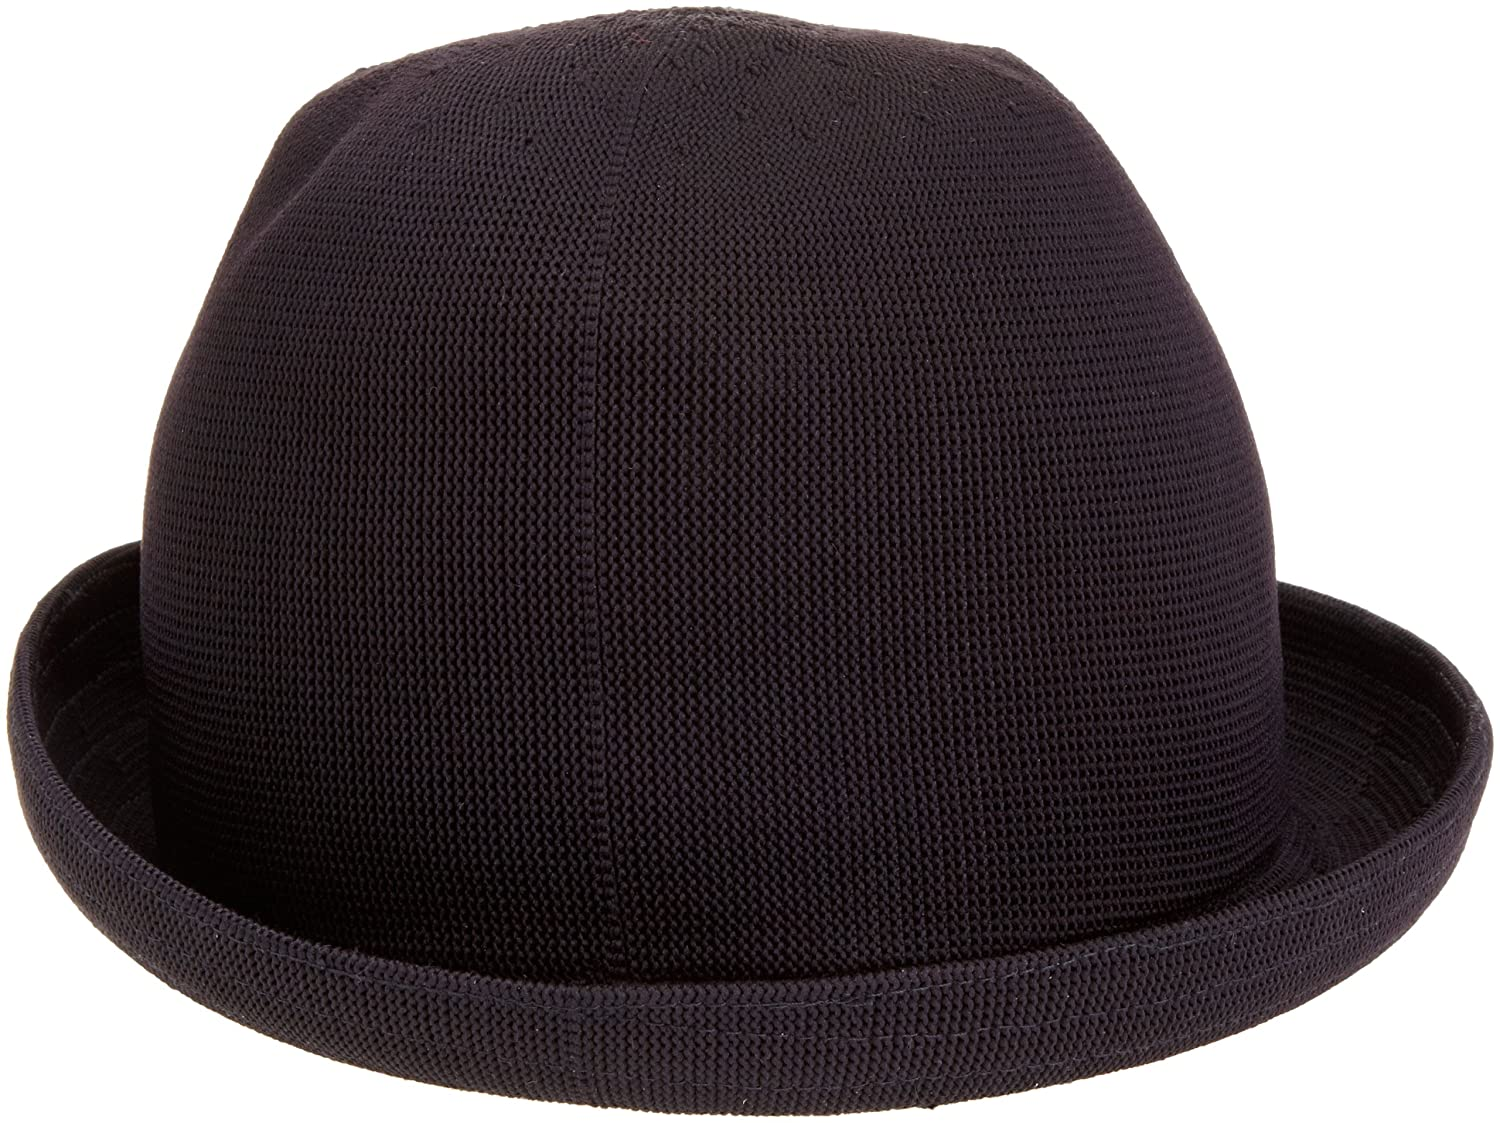 Kangol Men s Tropic Player Fedora Hat at Amazon Men s Clothing store   Fedoras 69151d0deca